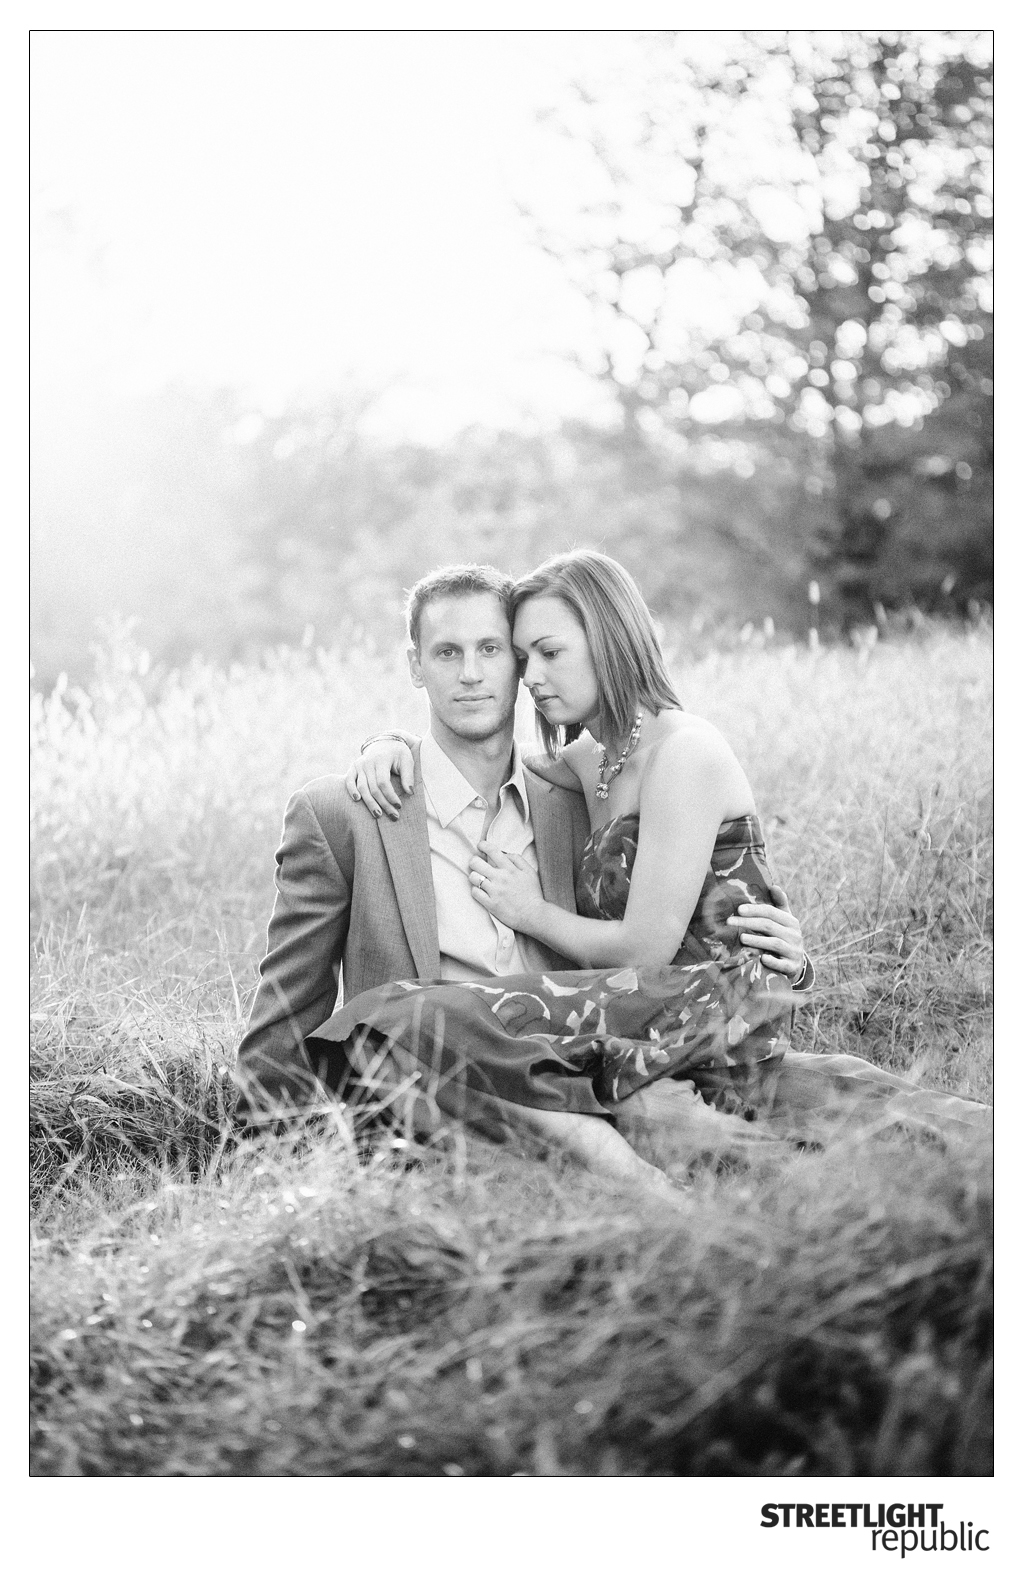 Nashville Wedding Photographers Streetlight Republic | Nashville Engagement Photos